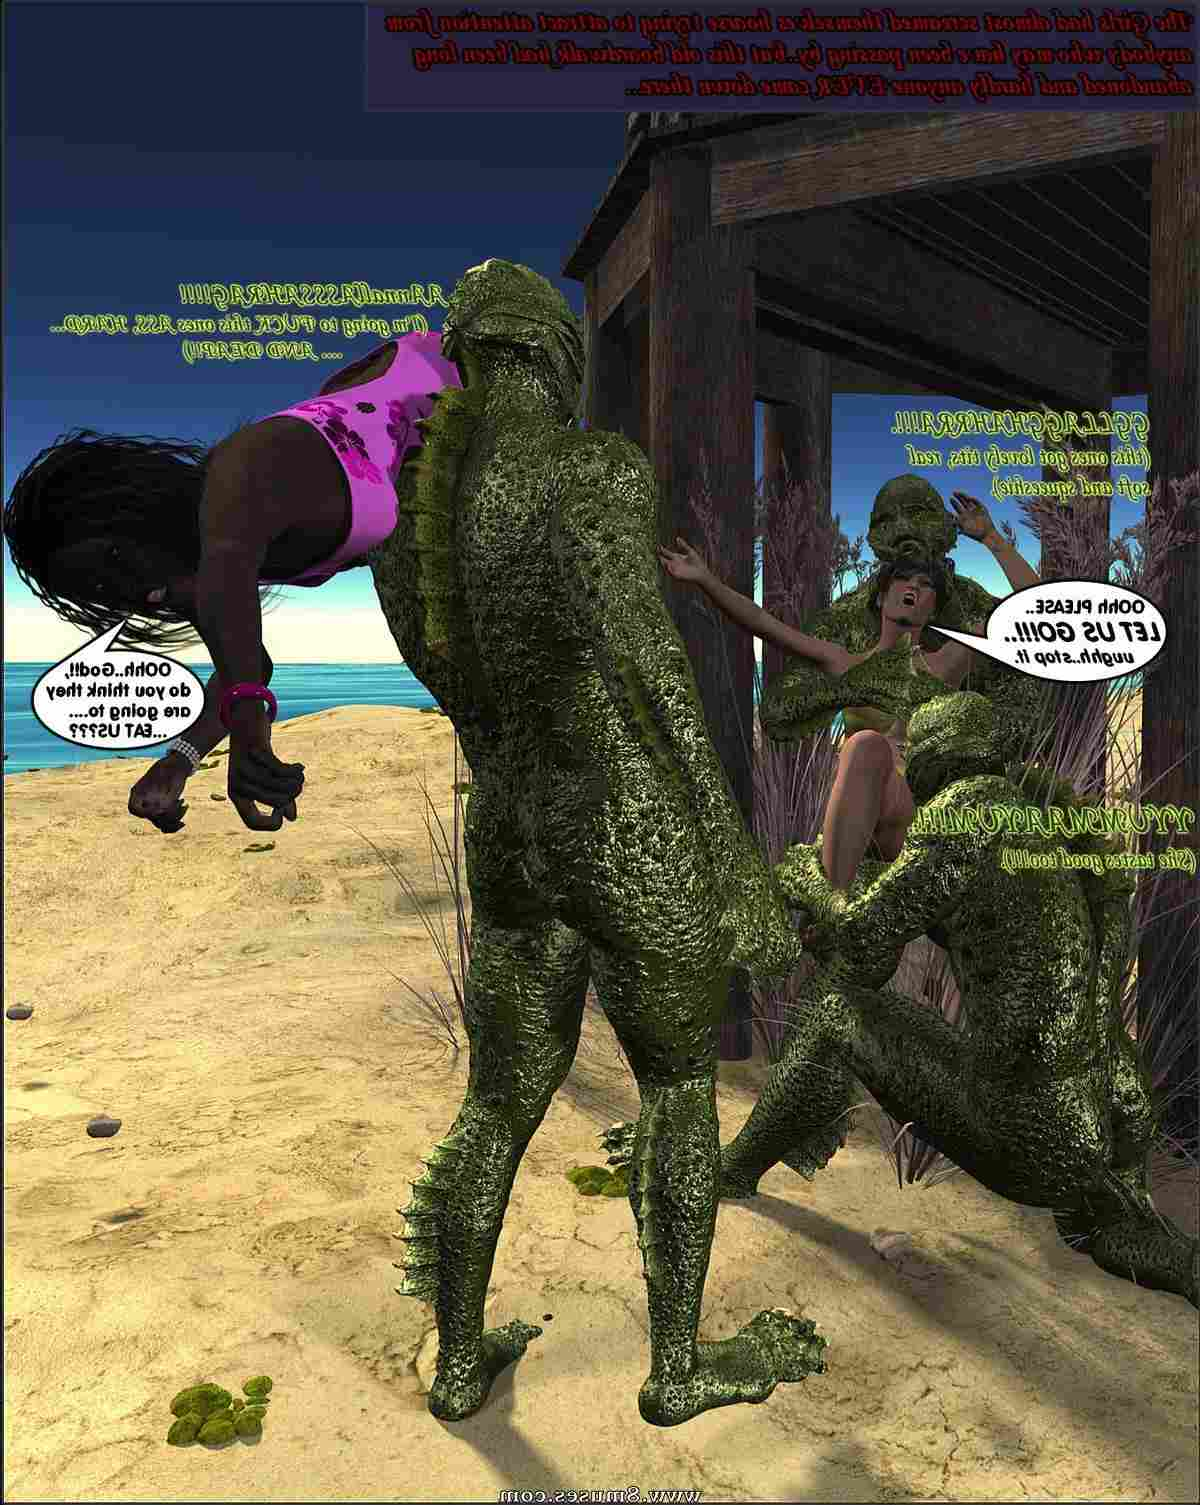 DarkSoul3D-Comics/Monstrous-Tales-Return-To-The-Boardwalk Monstrous_Tales_-_Return_To_The_Boardwalk__8muses_-_Sex_and_Porn_Comics_27.jpg